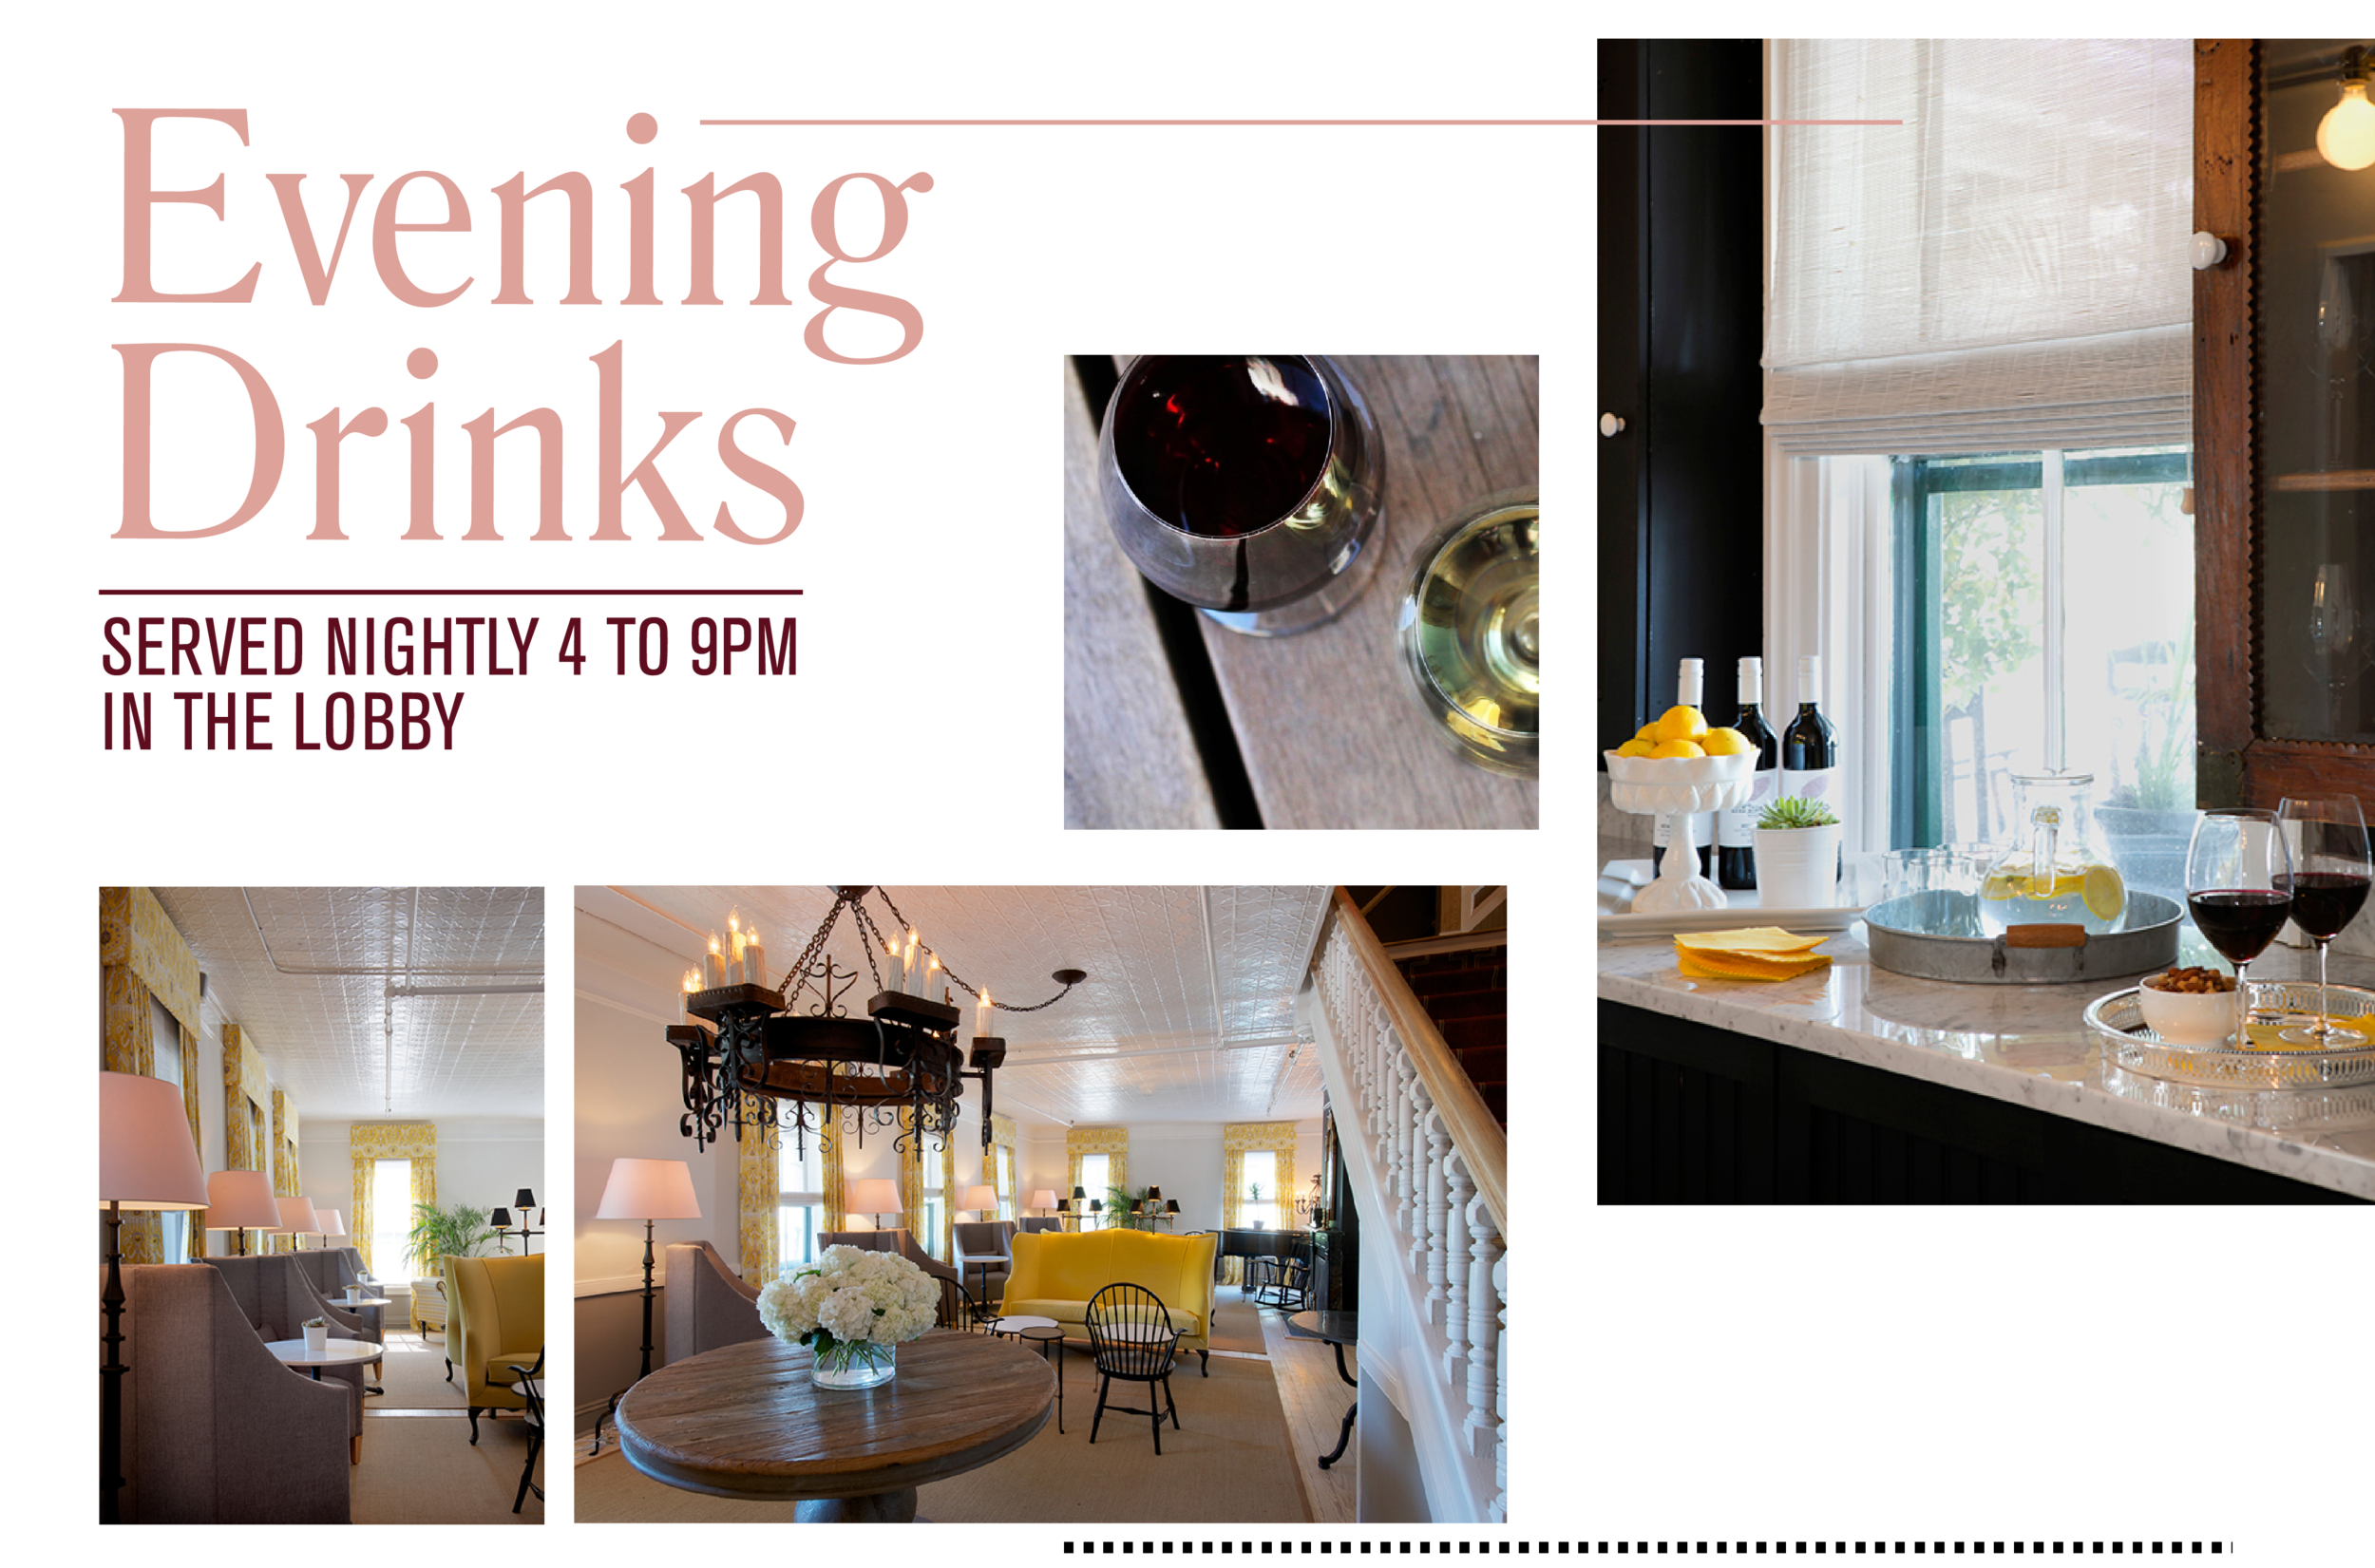 Evening Drinks Served Nightly 4 to 9pm in the Lobby. Wine glasses, lobby area with table, couches, chairs